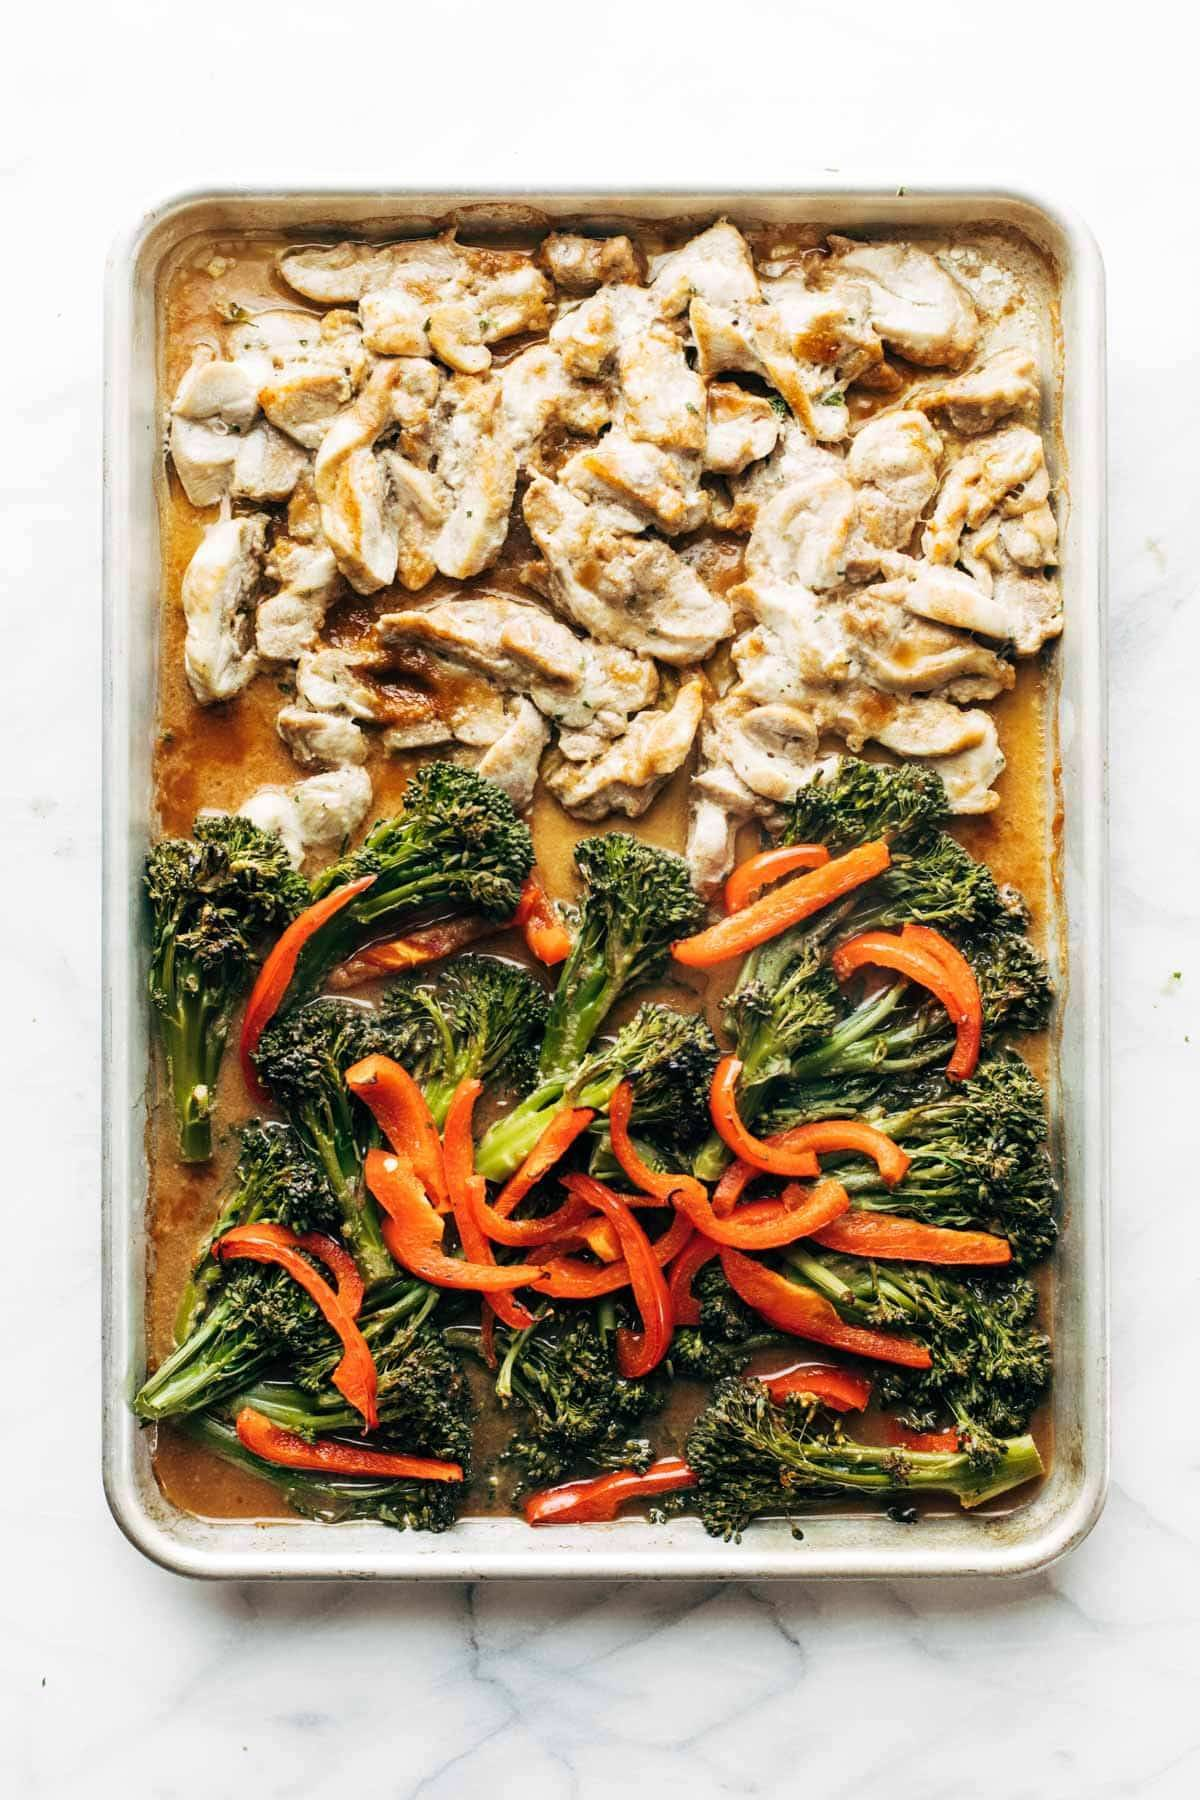 Chicken and veggies on a sheet pan.